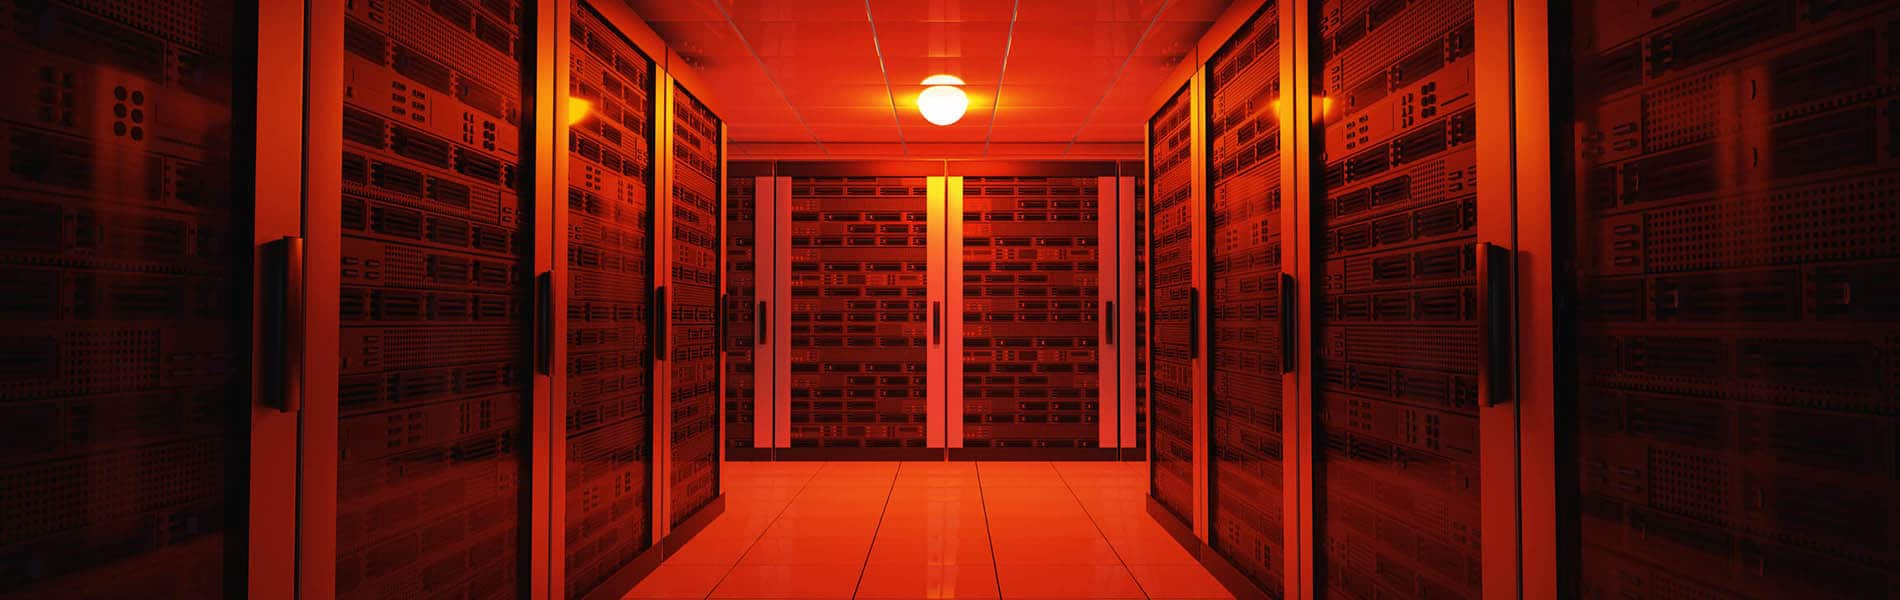 avoid downtime with high availability